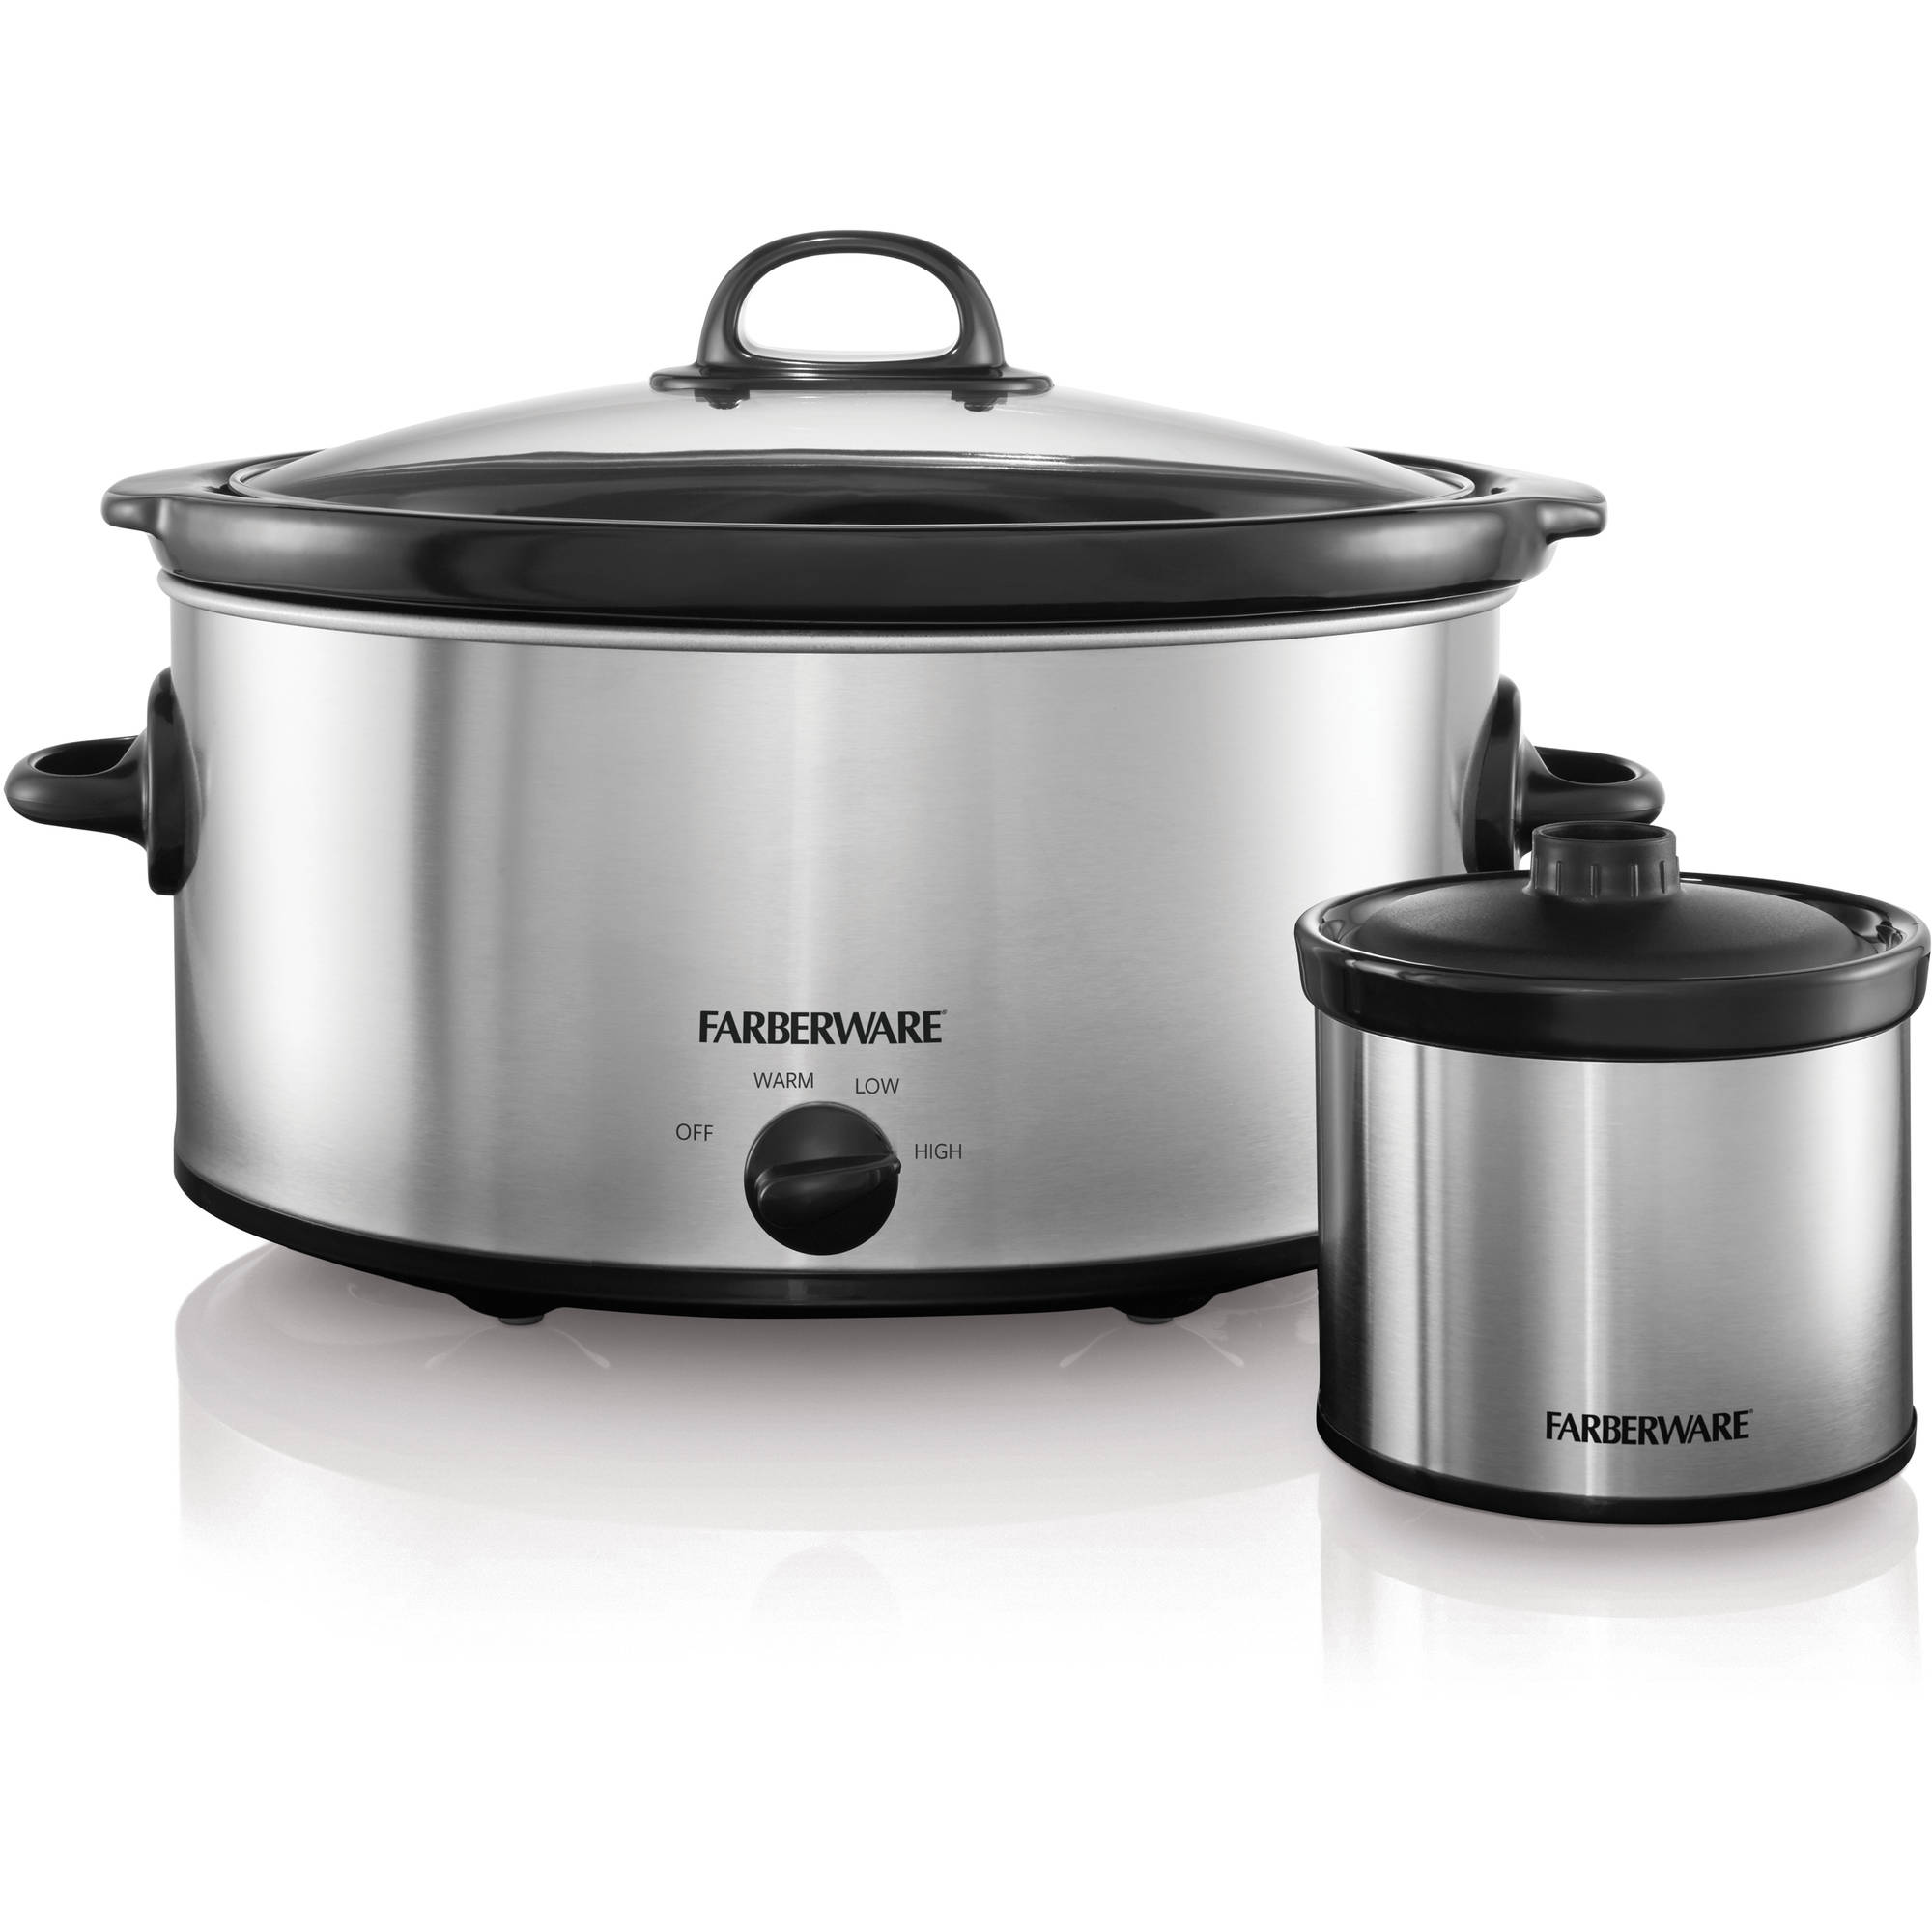 Farberware 6 qt Slow Cooker with Mini Dipper